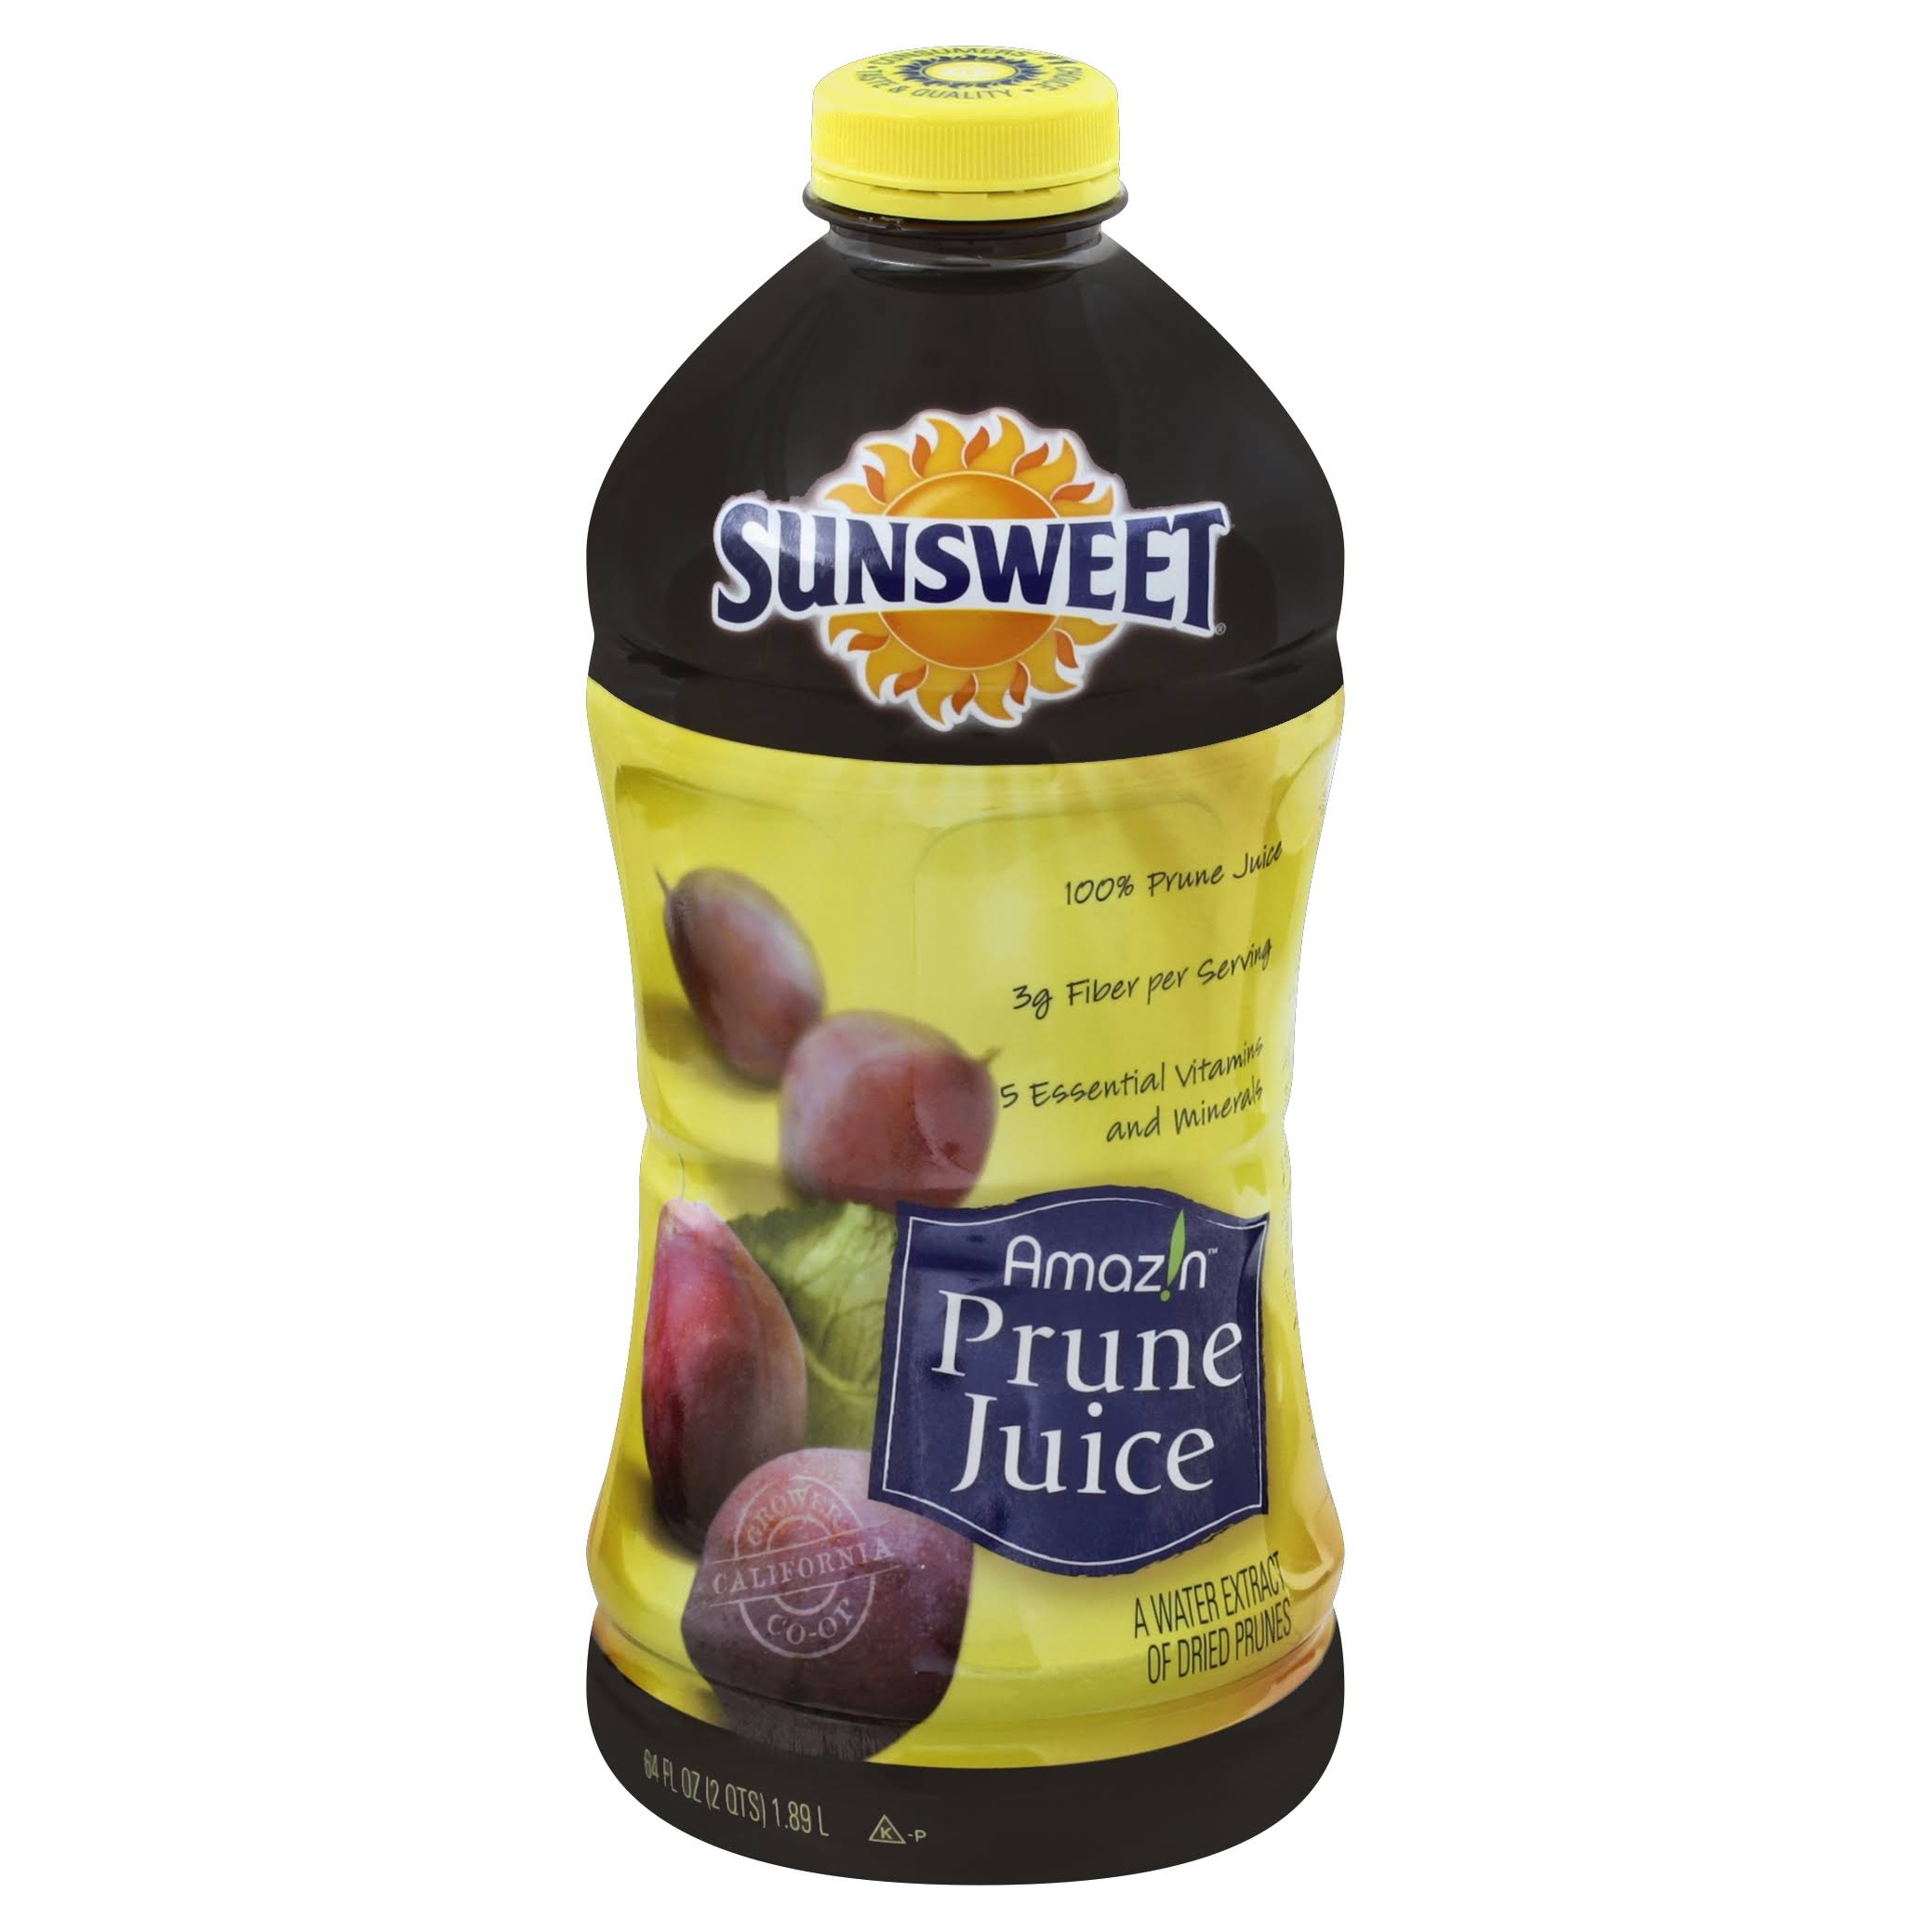 Sunsweet Amazin Prune Juice - 64 fl oz